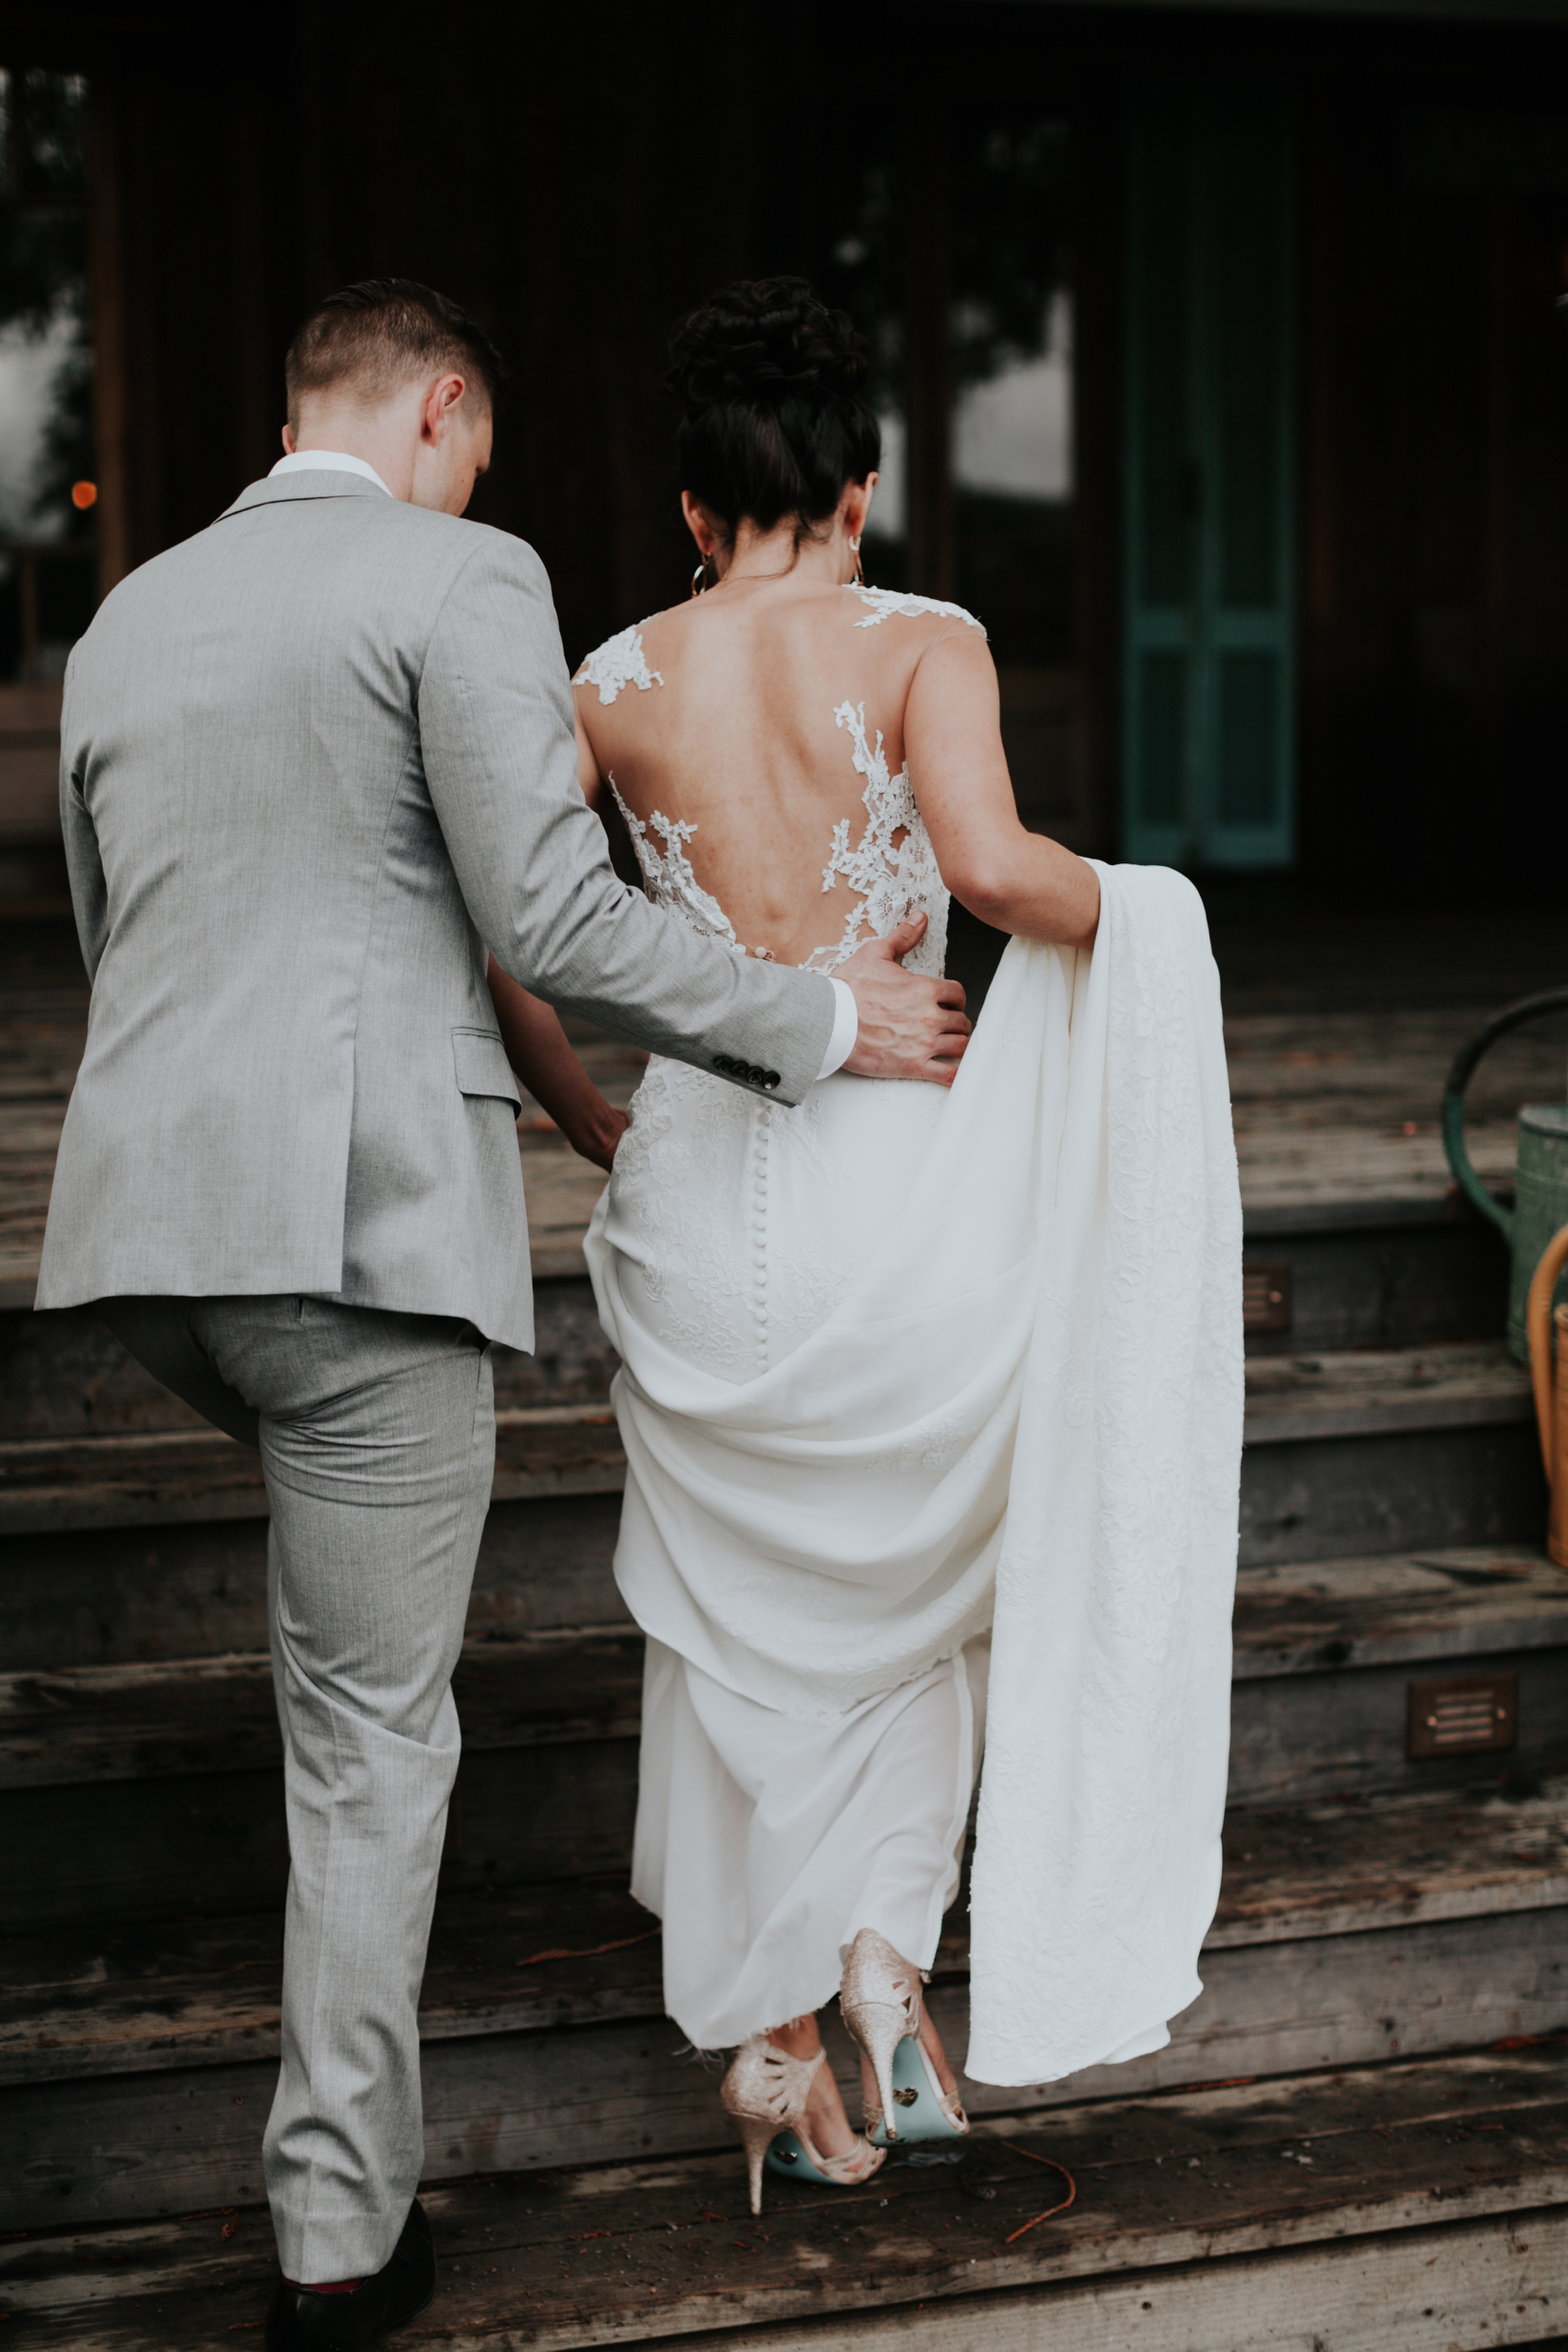 SSS Ranch Wedding Chiara & Jacques Emily Magers Photography-459.jpg